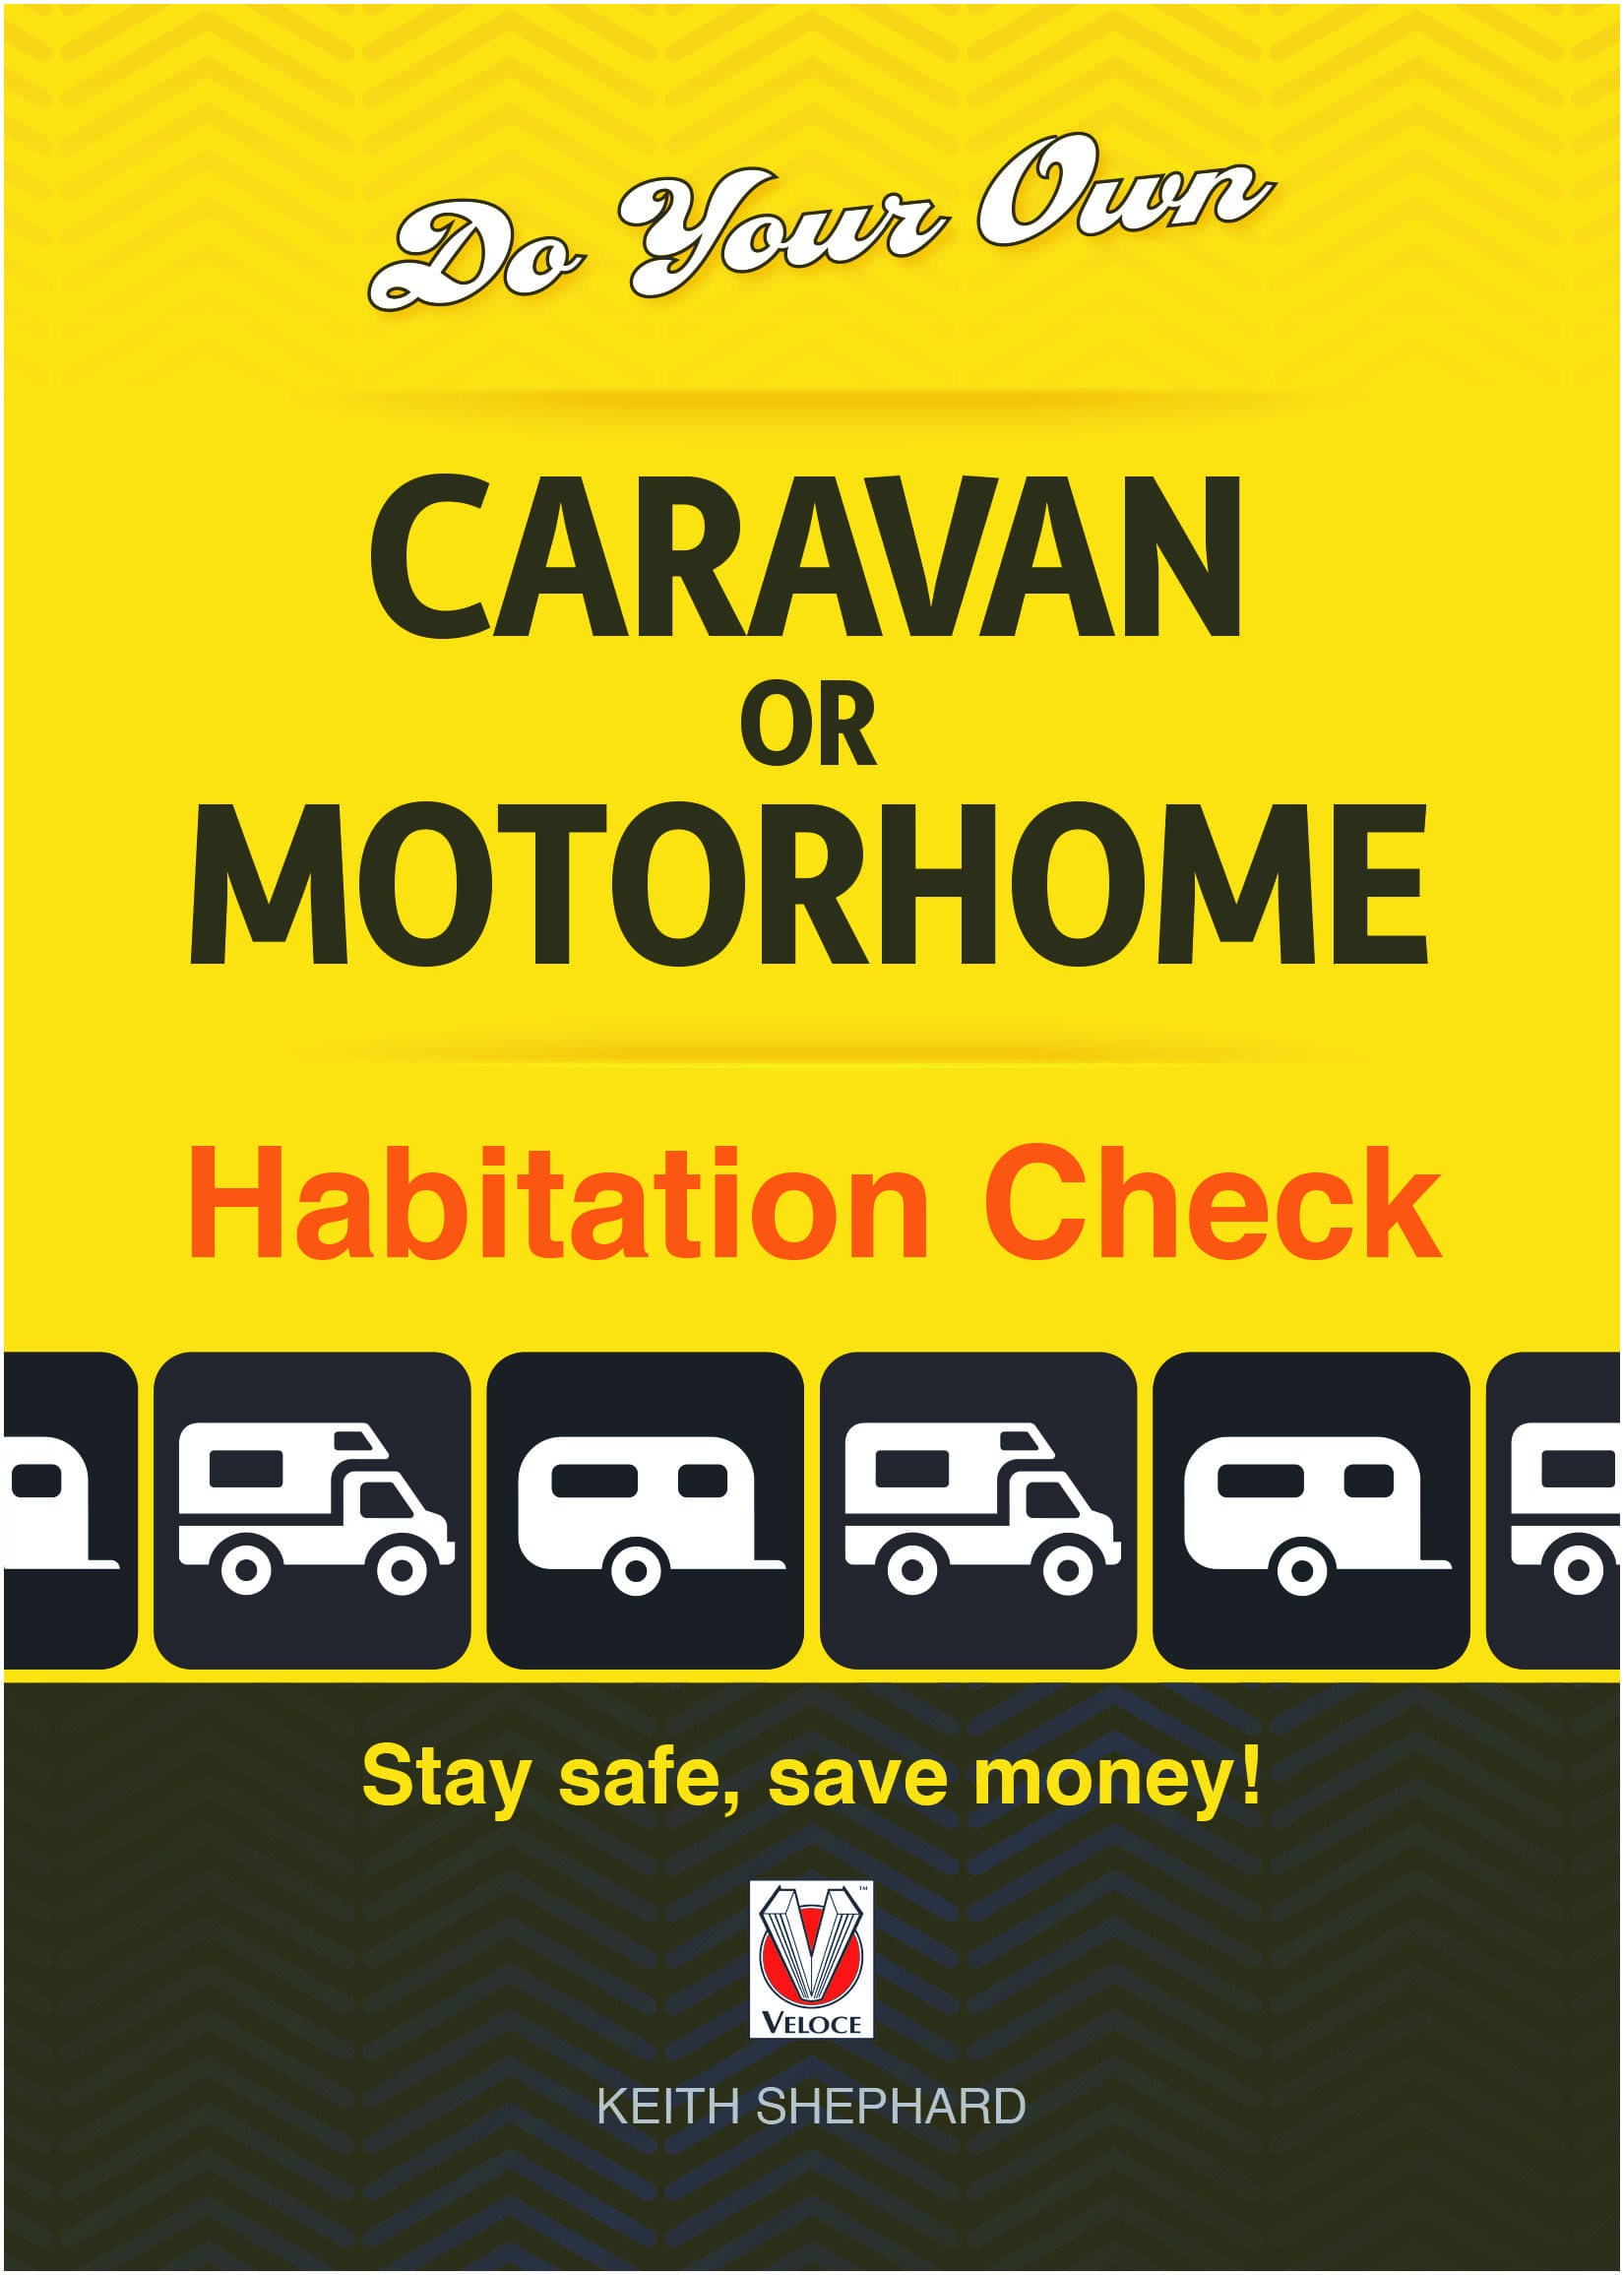 Do Your Own Caravan or Motorhome Habitation Check – Stay safe, save money!